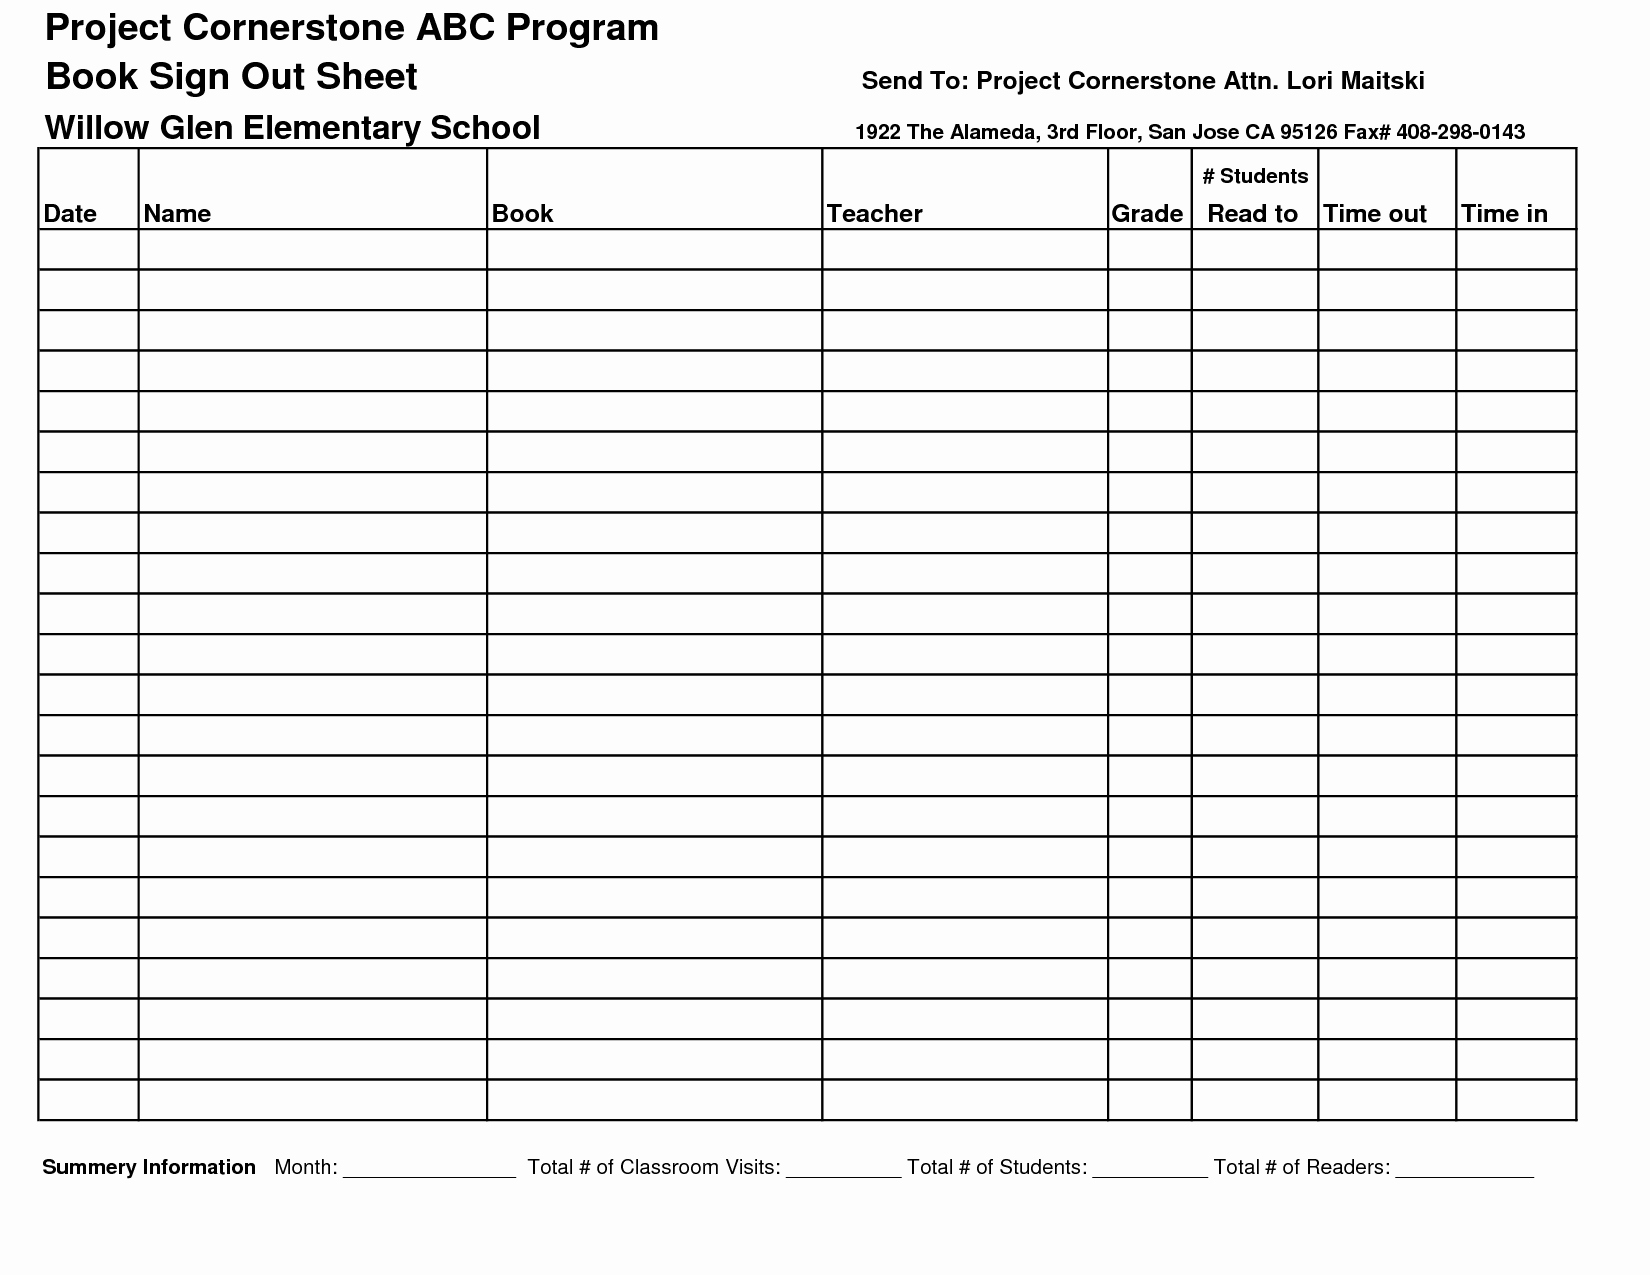 Sign Out Sheet Template Excel Inspirational 8 Best Of Sign Out Sheet Template Printable Free